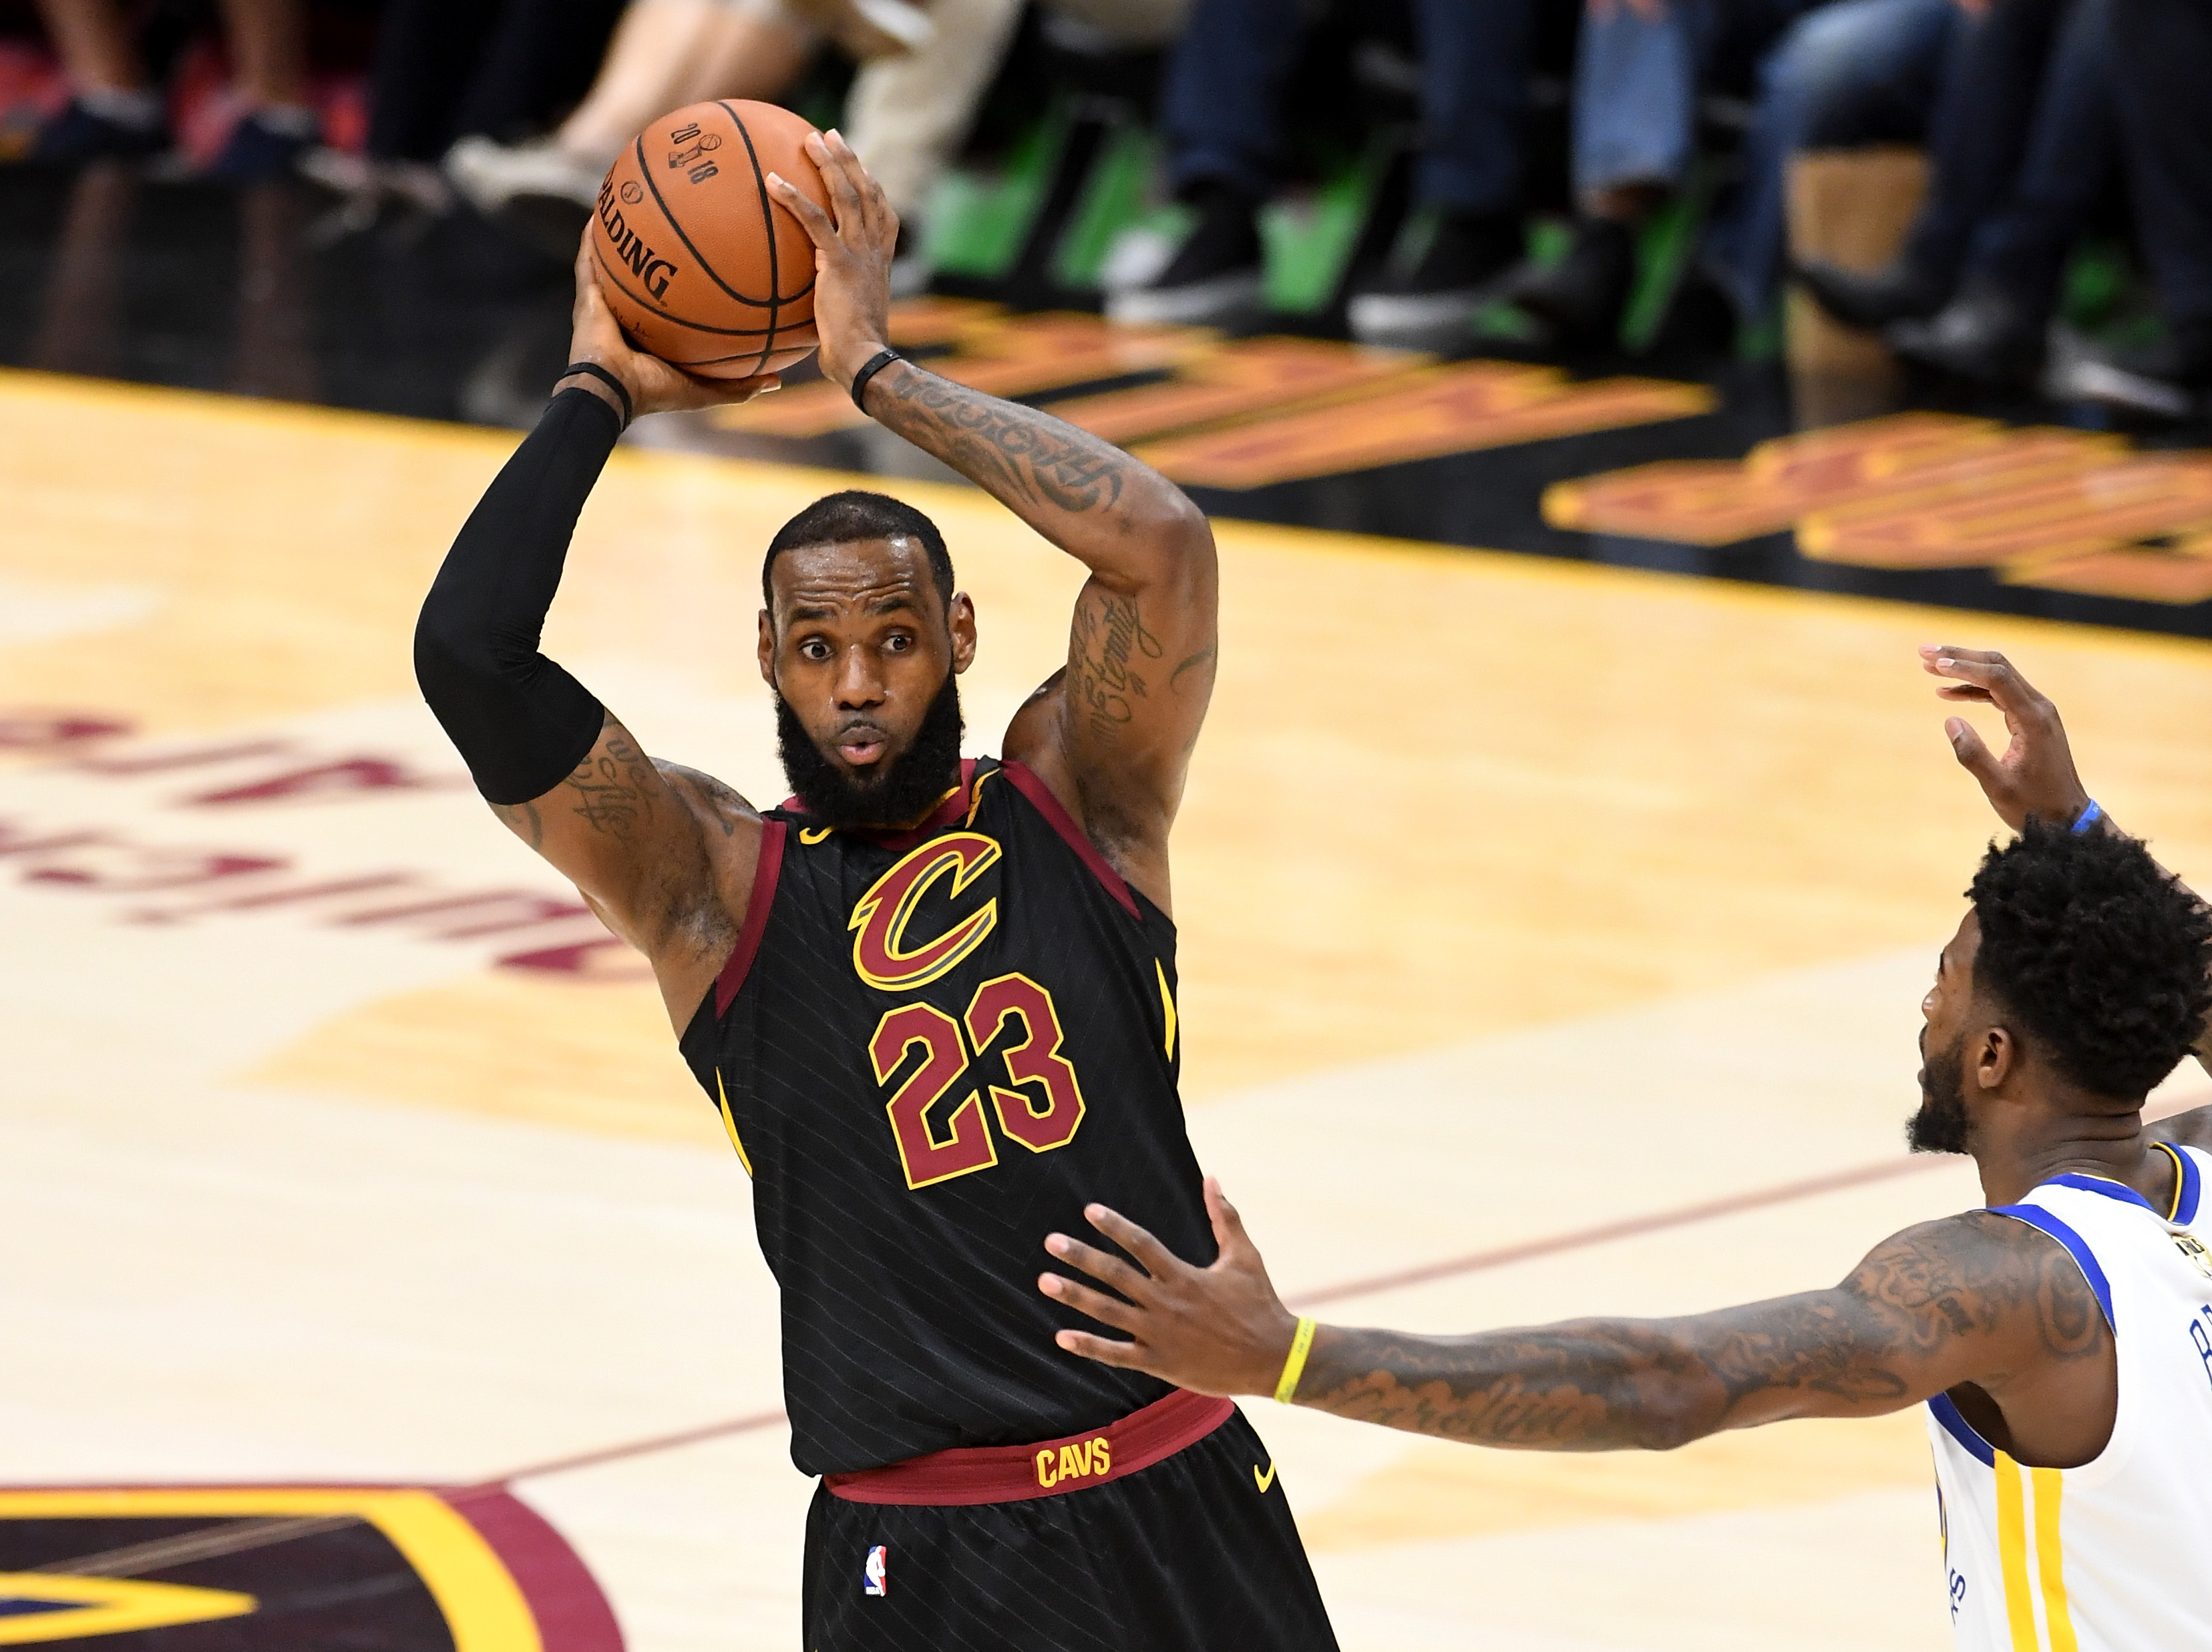 c3ace3e665e5 Space Jam 2 Featuring LeBron James Is Officially Happening!